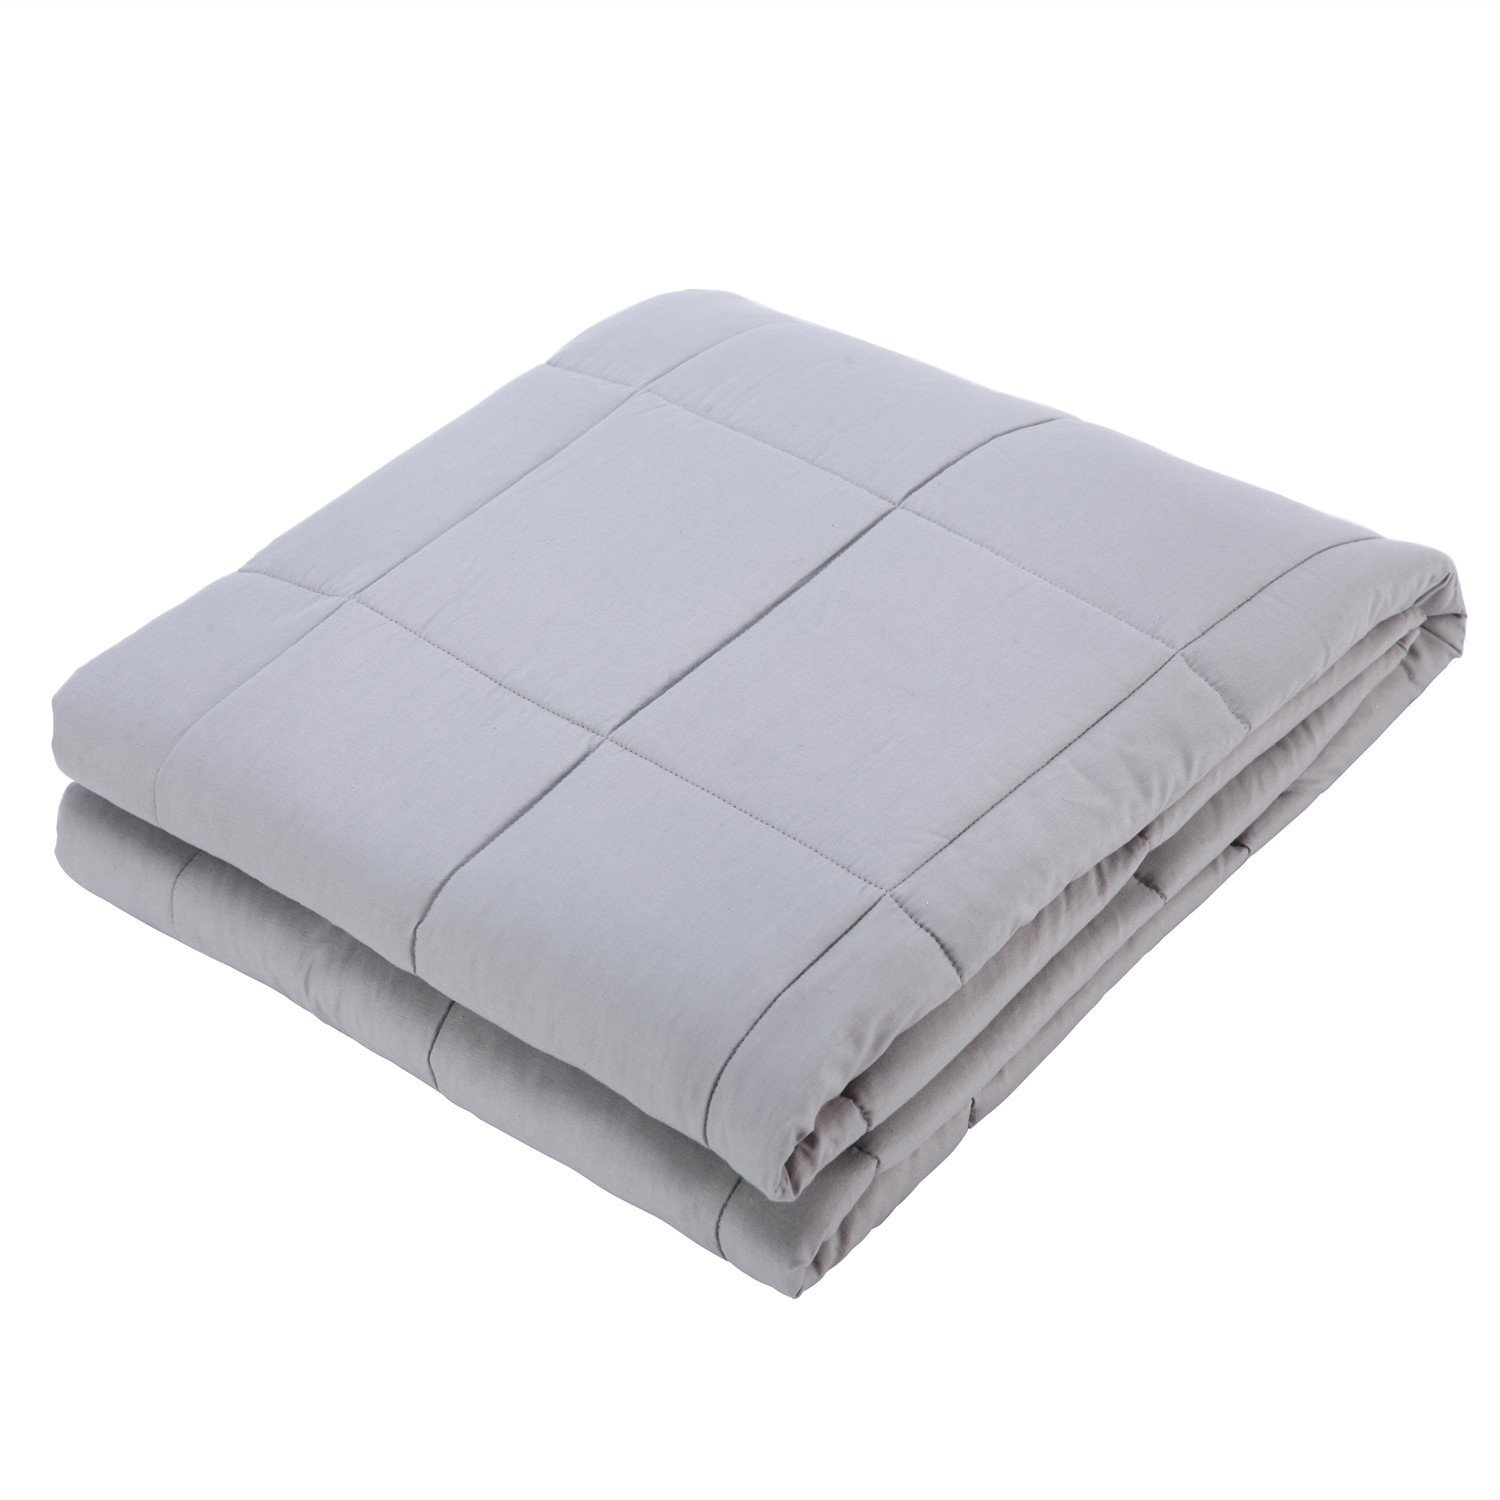 Royhom Weighted Blanket for Adults & Kids | Gravity Blanket, Silver Grey 48'' x 72'' - 15lbs for 100-150lbs Individual, Great for Anxiety, Insomnia, Autism, ADHD, PTSD and sensory processing disorders